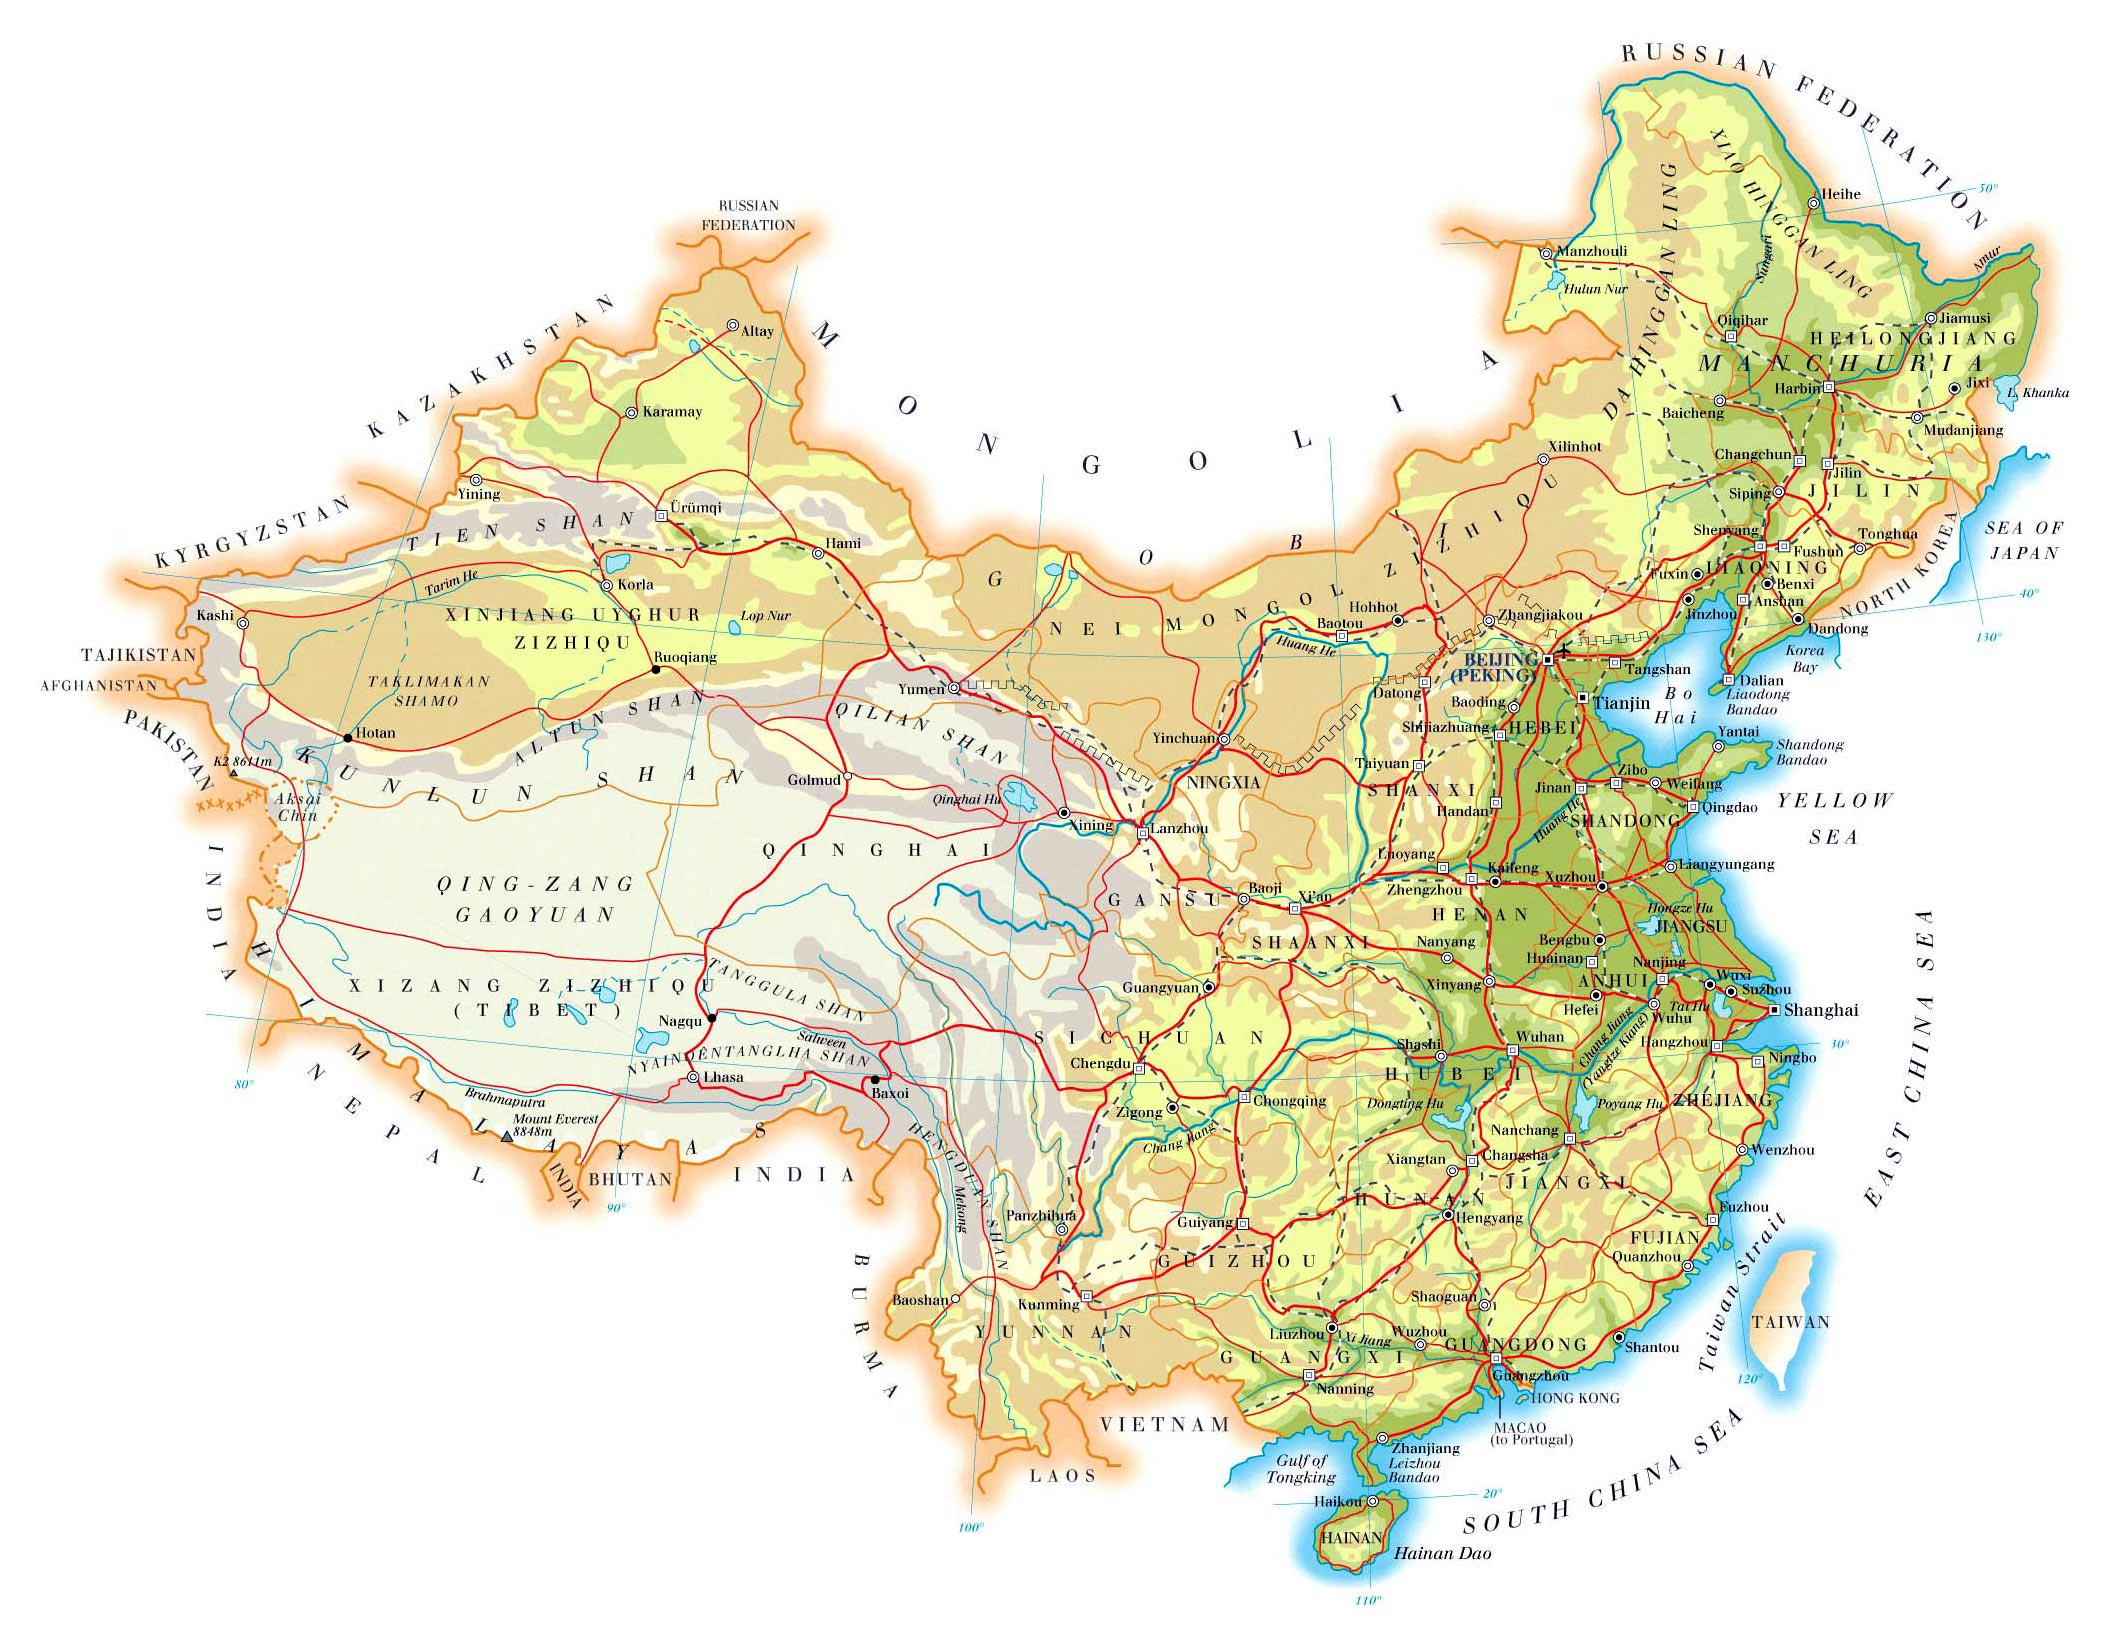 China Maps | Printable Maps of China for Download